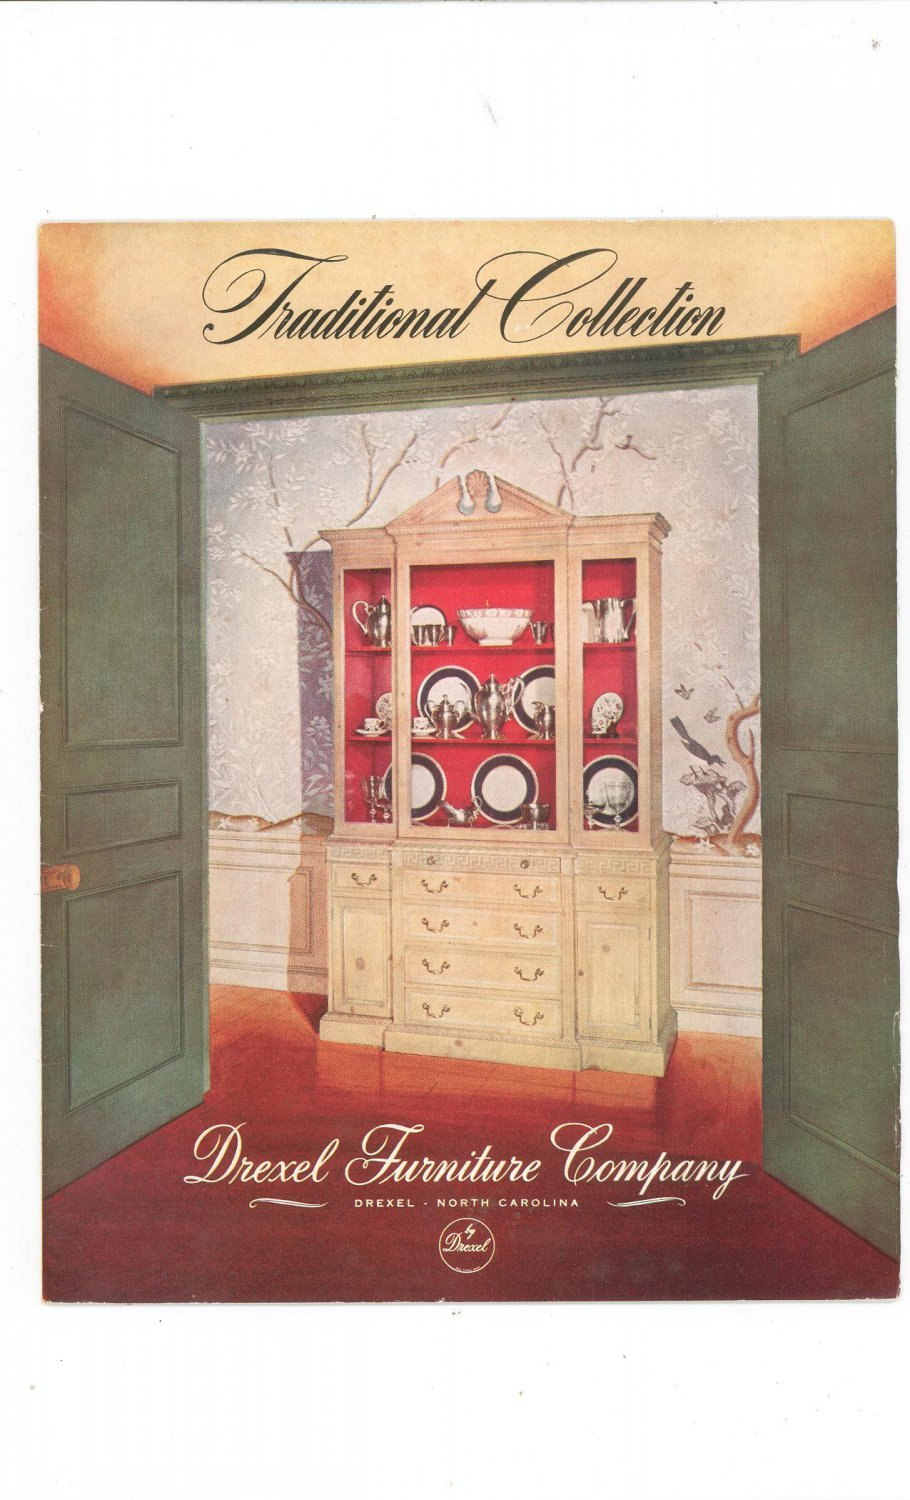 Vintage Drexel Furniture Company Traditional Collection